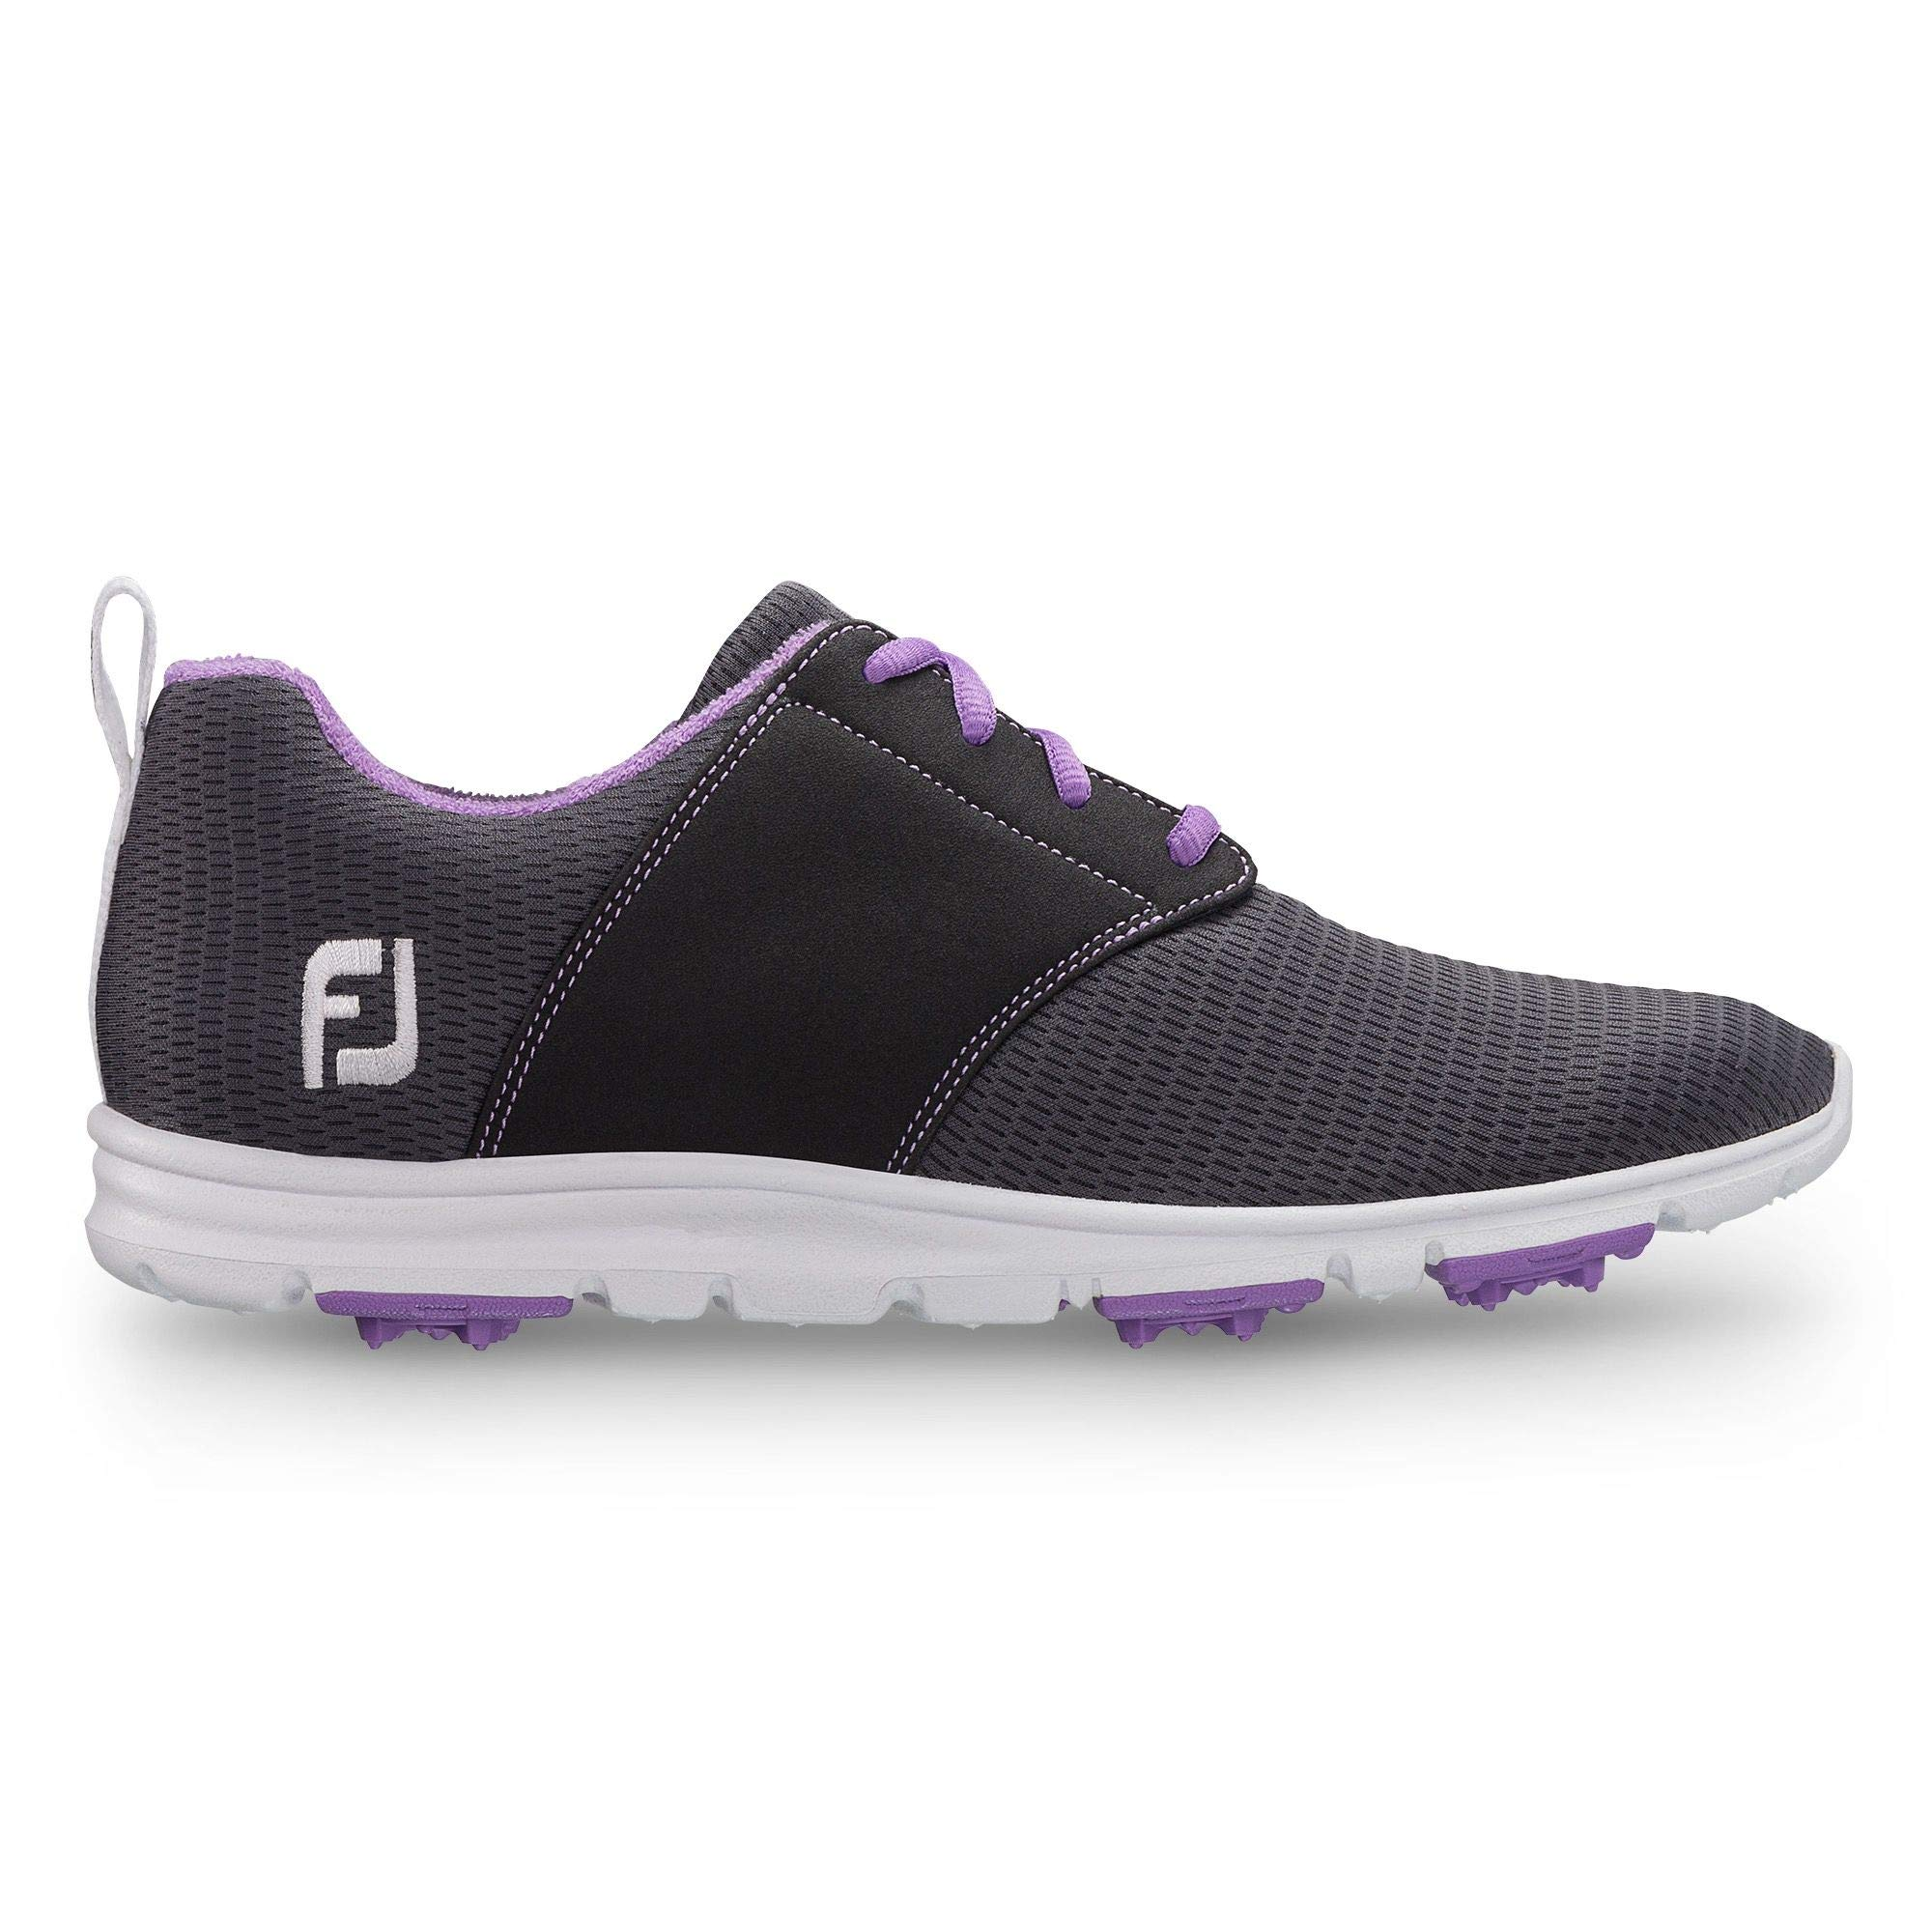 FootJoy Women's Enjoy-Previous Season Style Golf Shoes Black 8 M, Charcoal, US by FootJoy